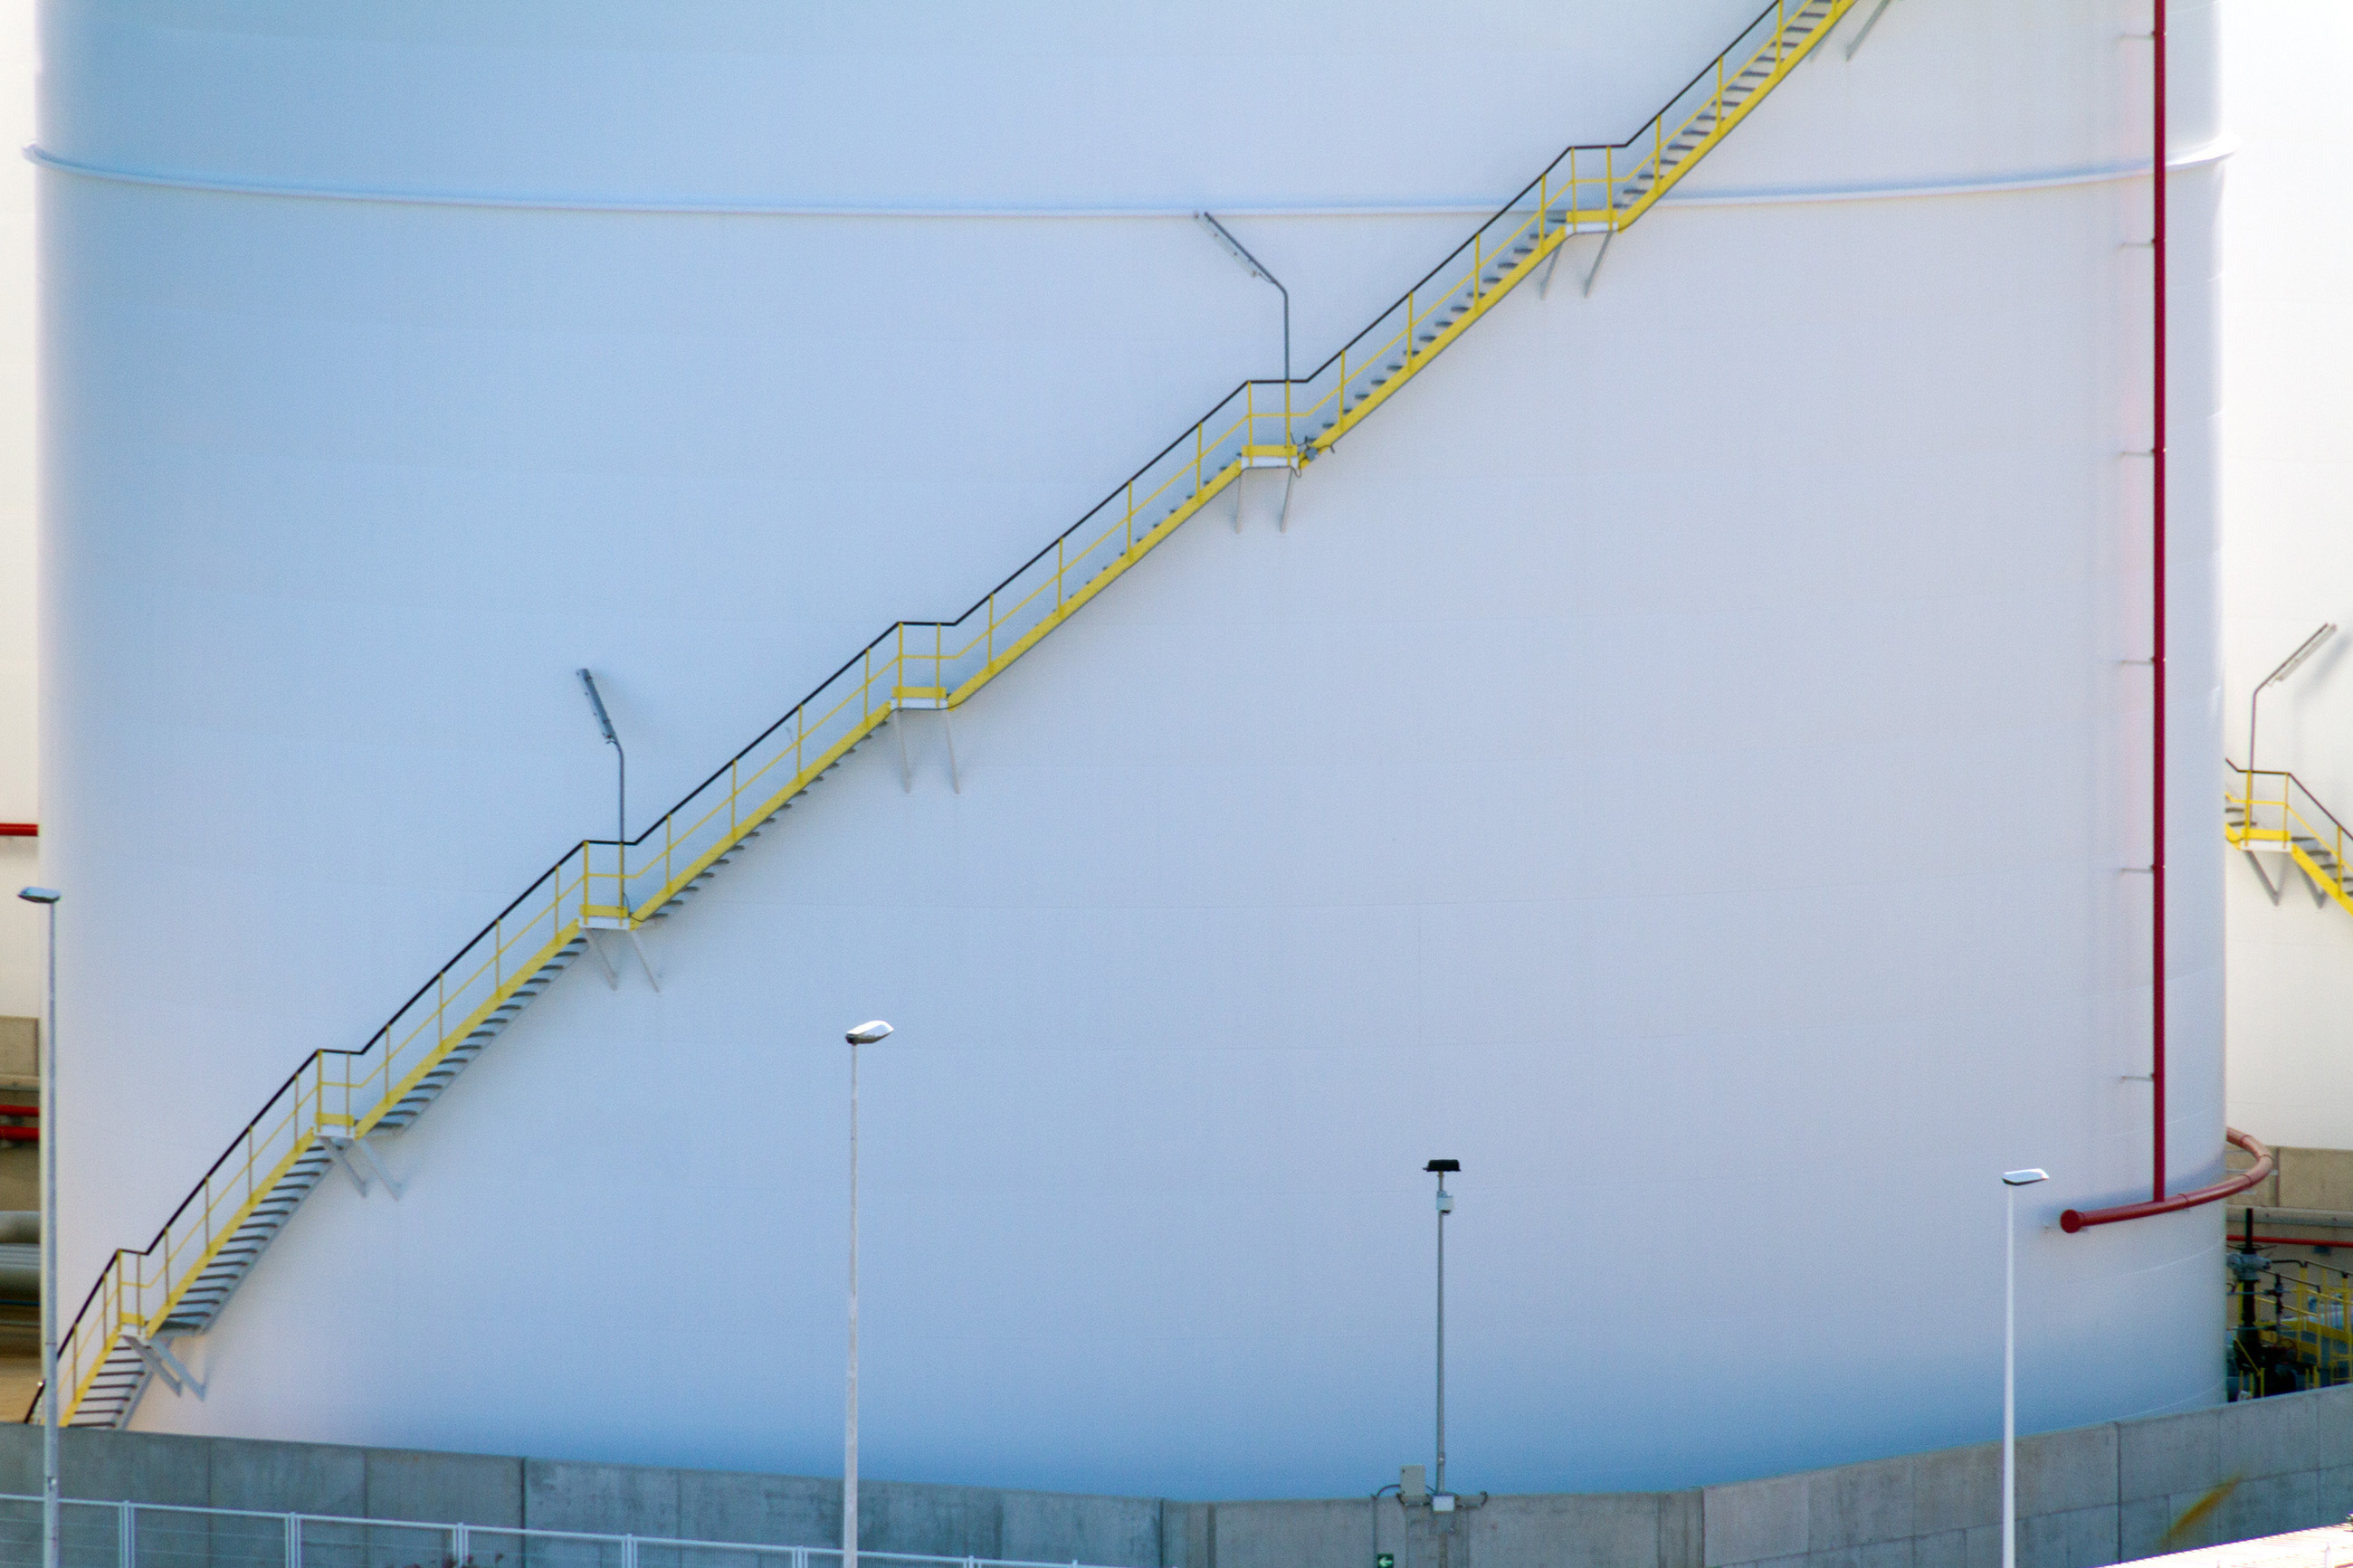 Yellow stairs on a white storage tank, Stairs, Refinery, Resources, Security, HQ Photo